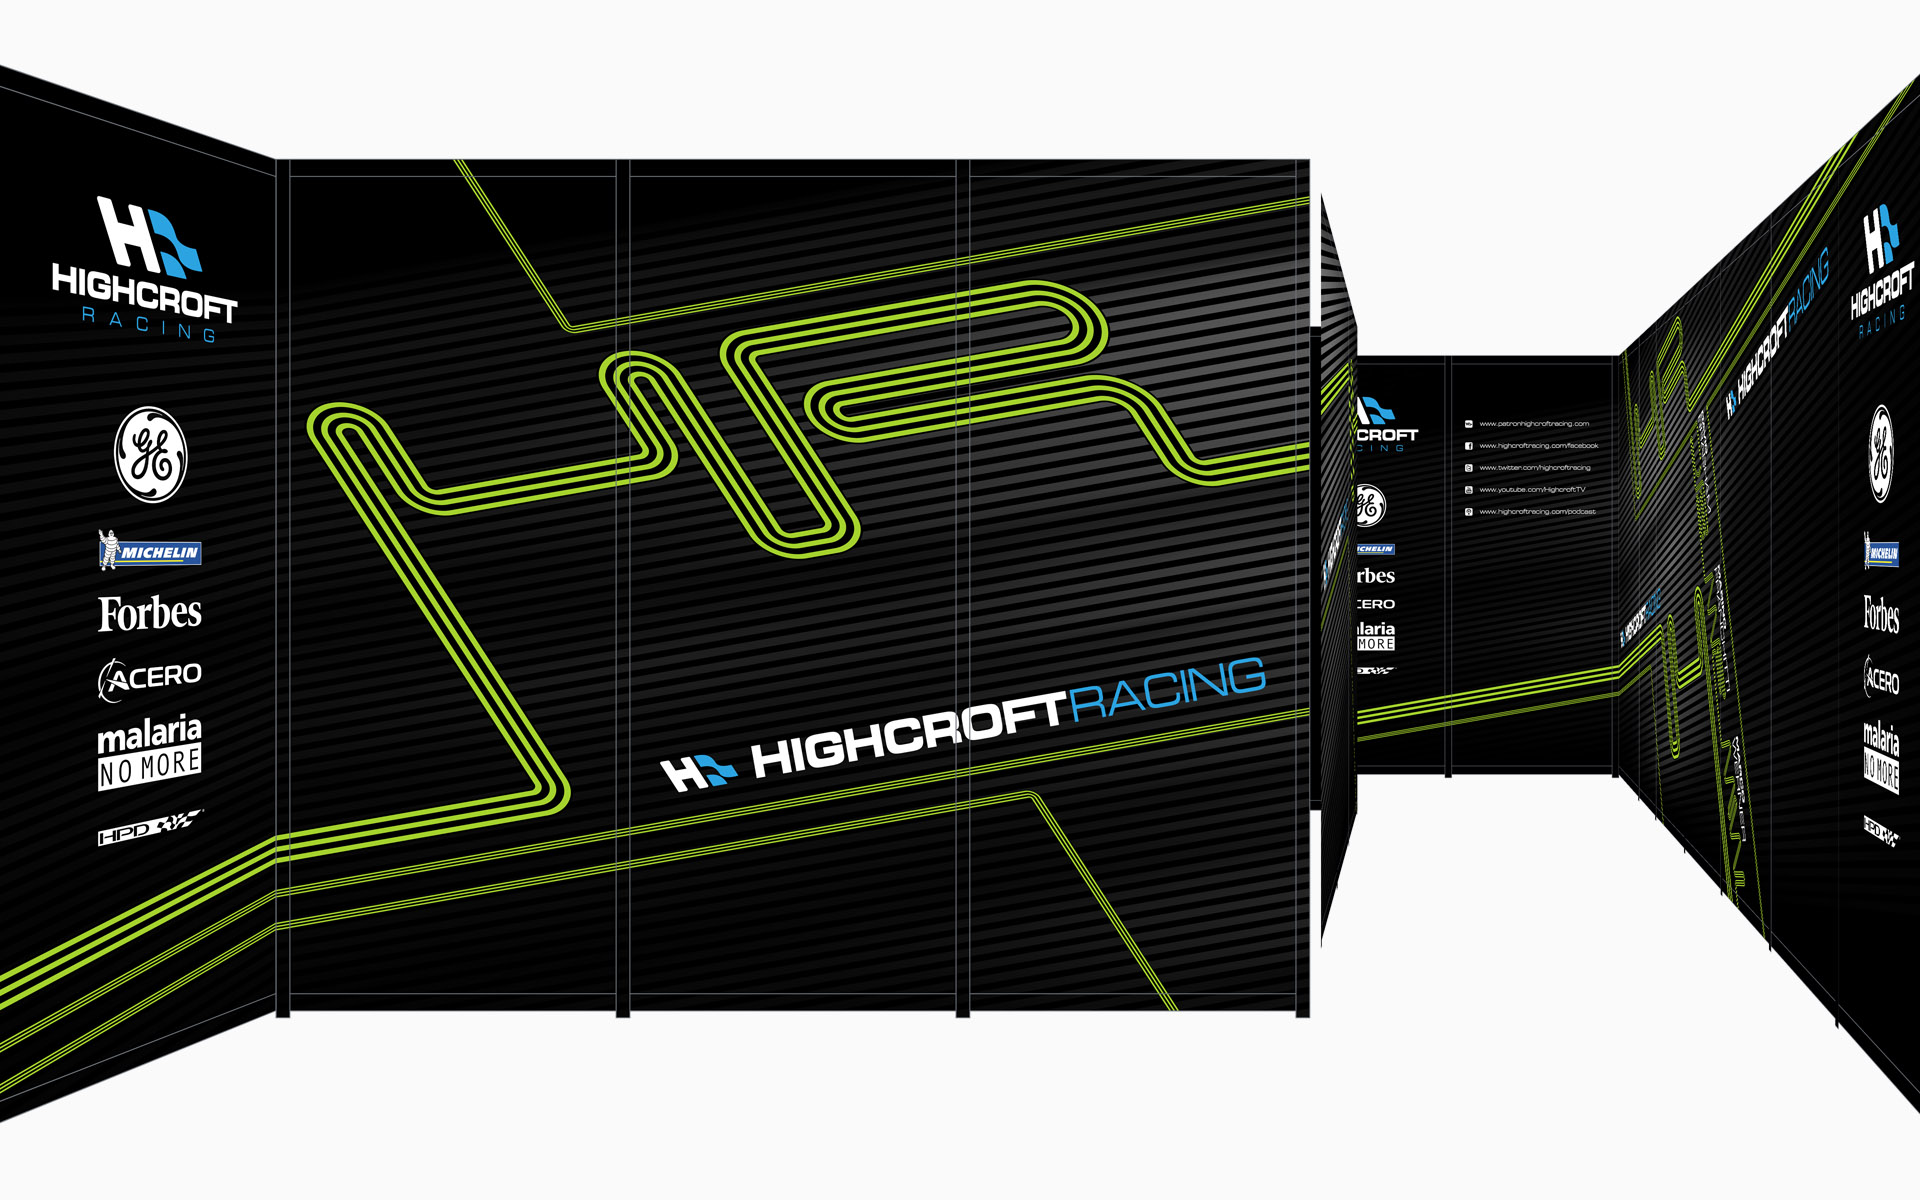 2010 Pátron Highcroft Racing Environment Graphics